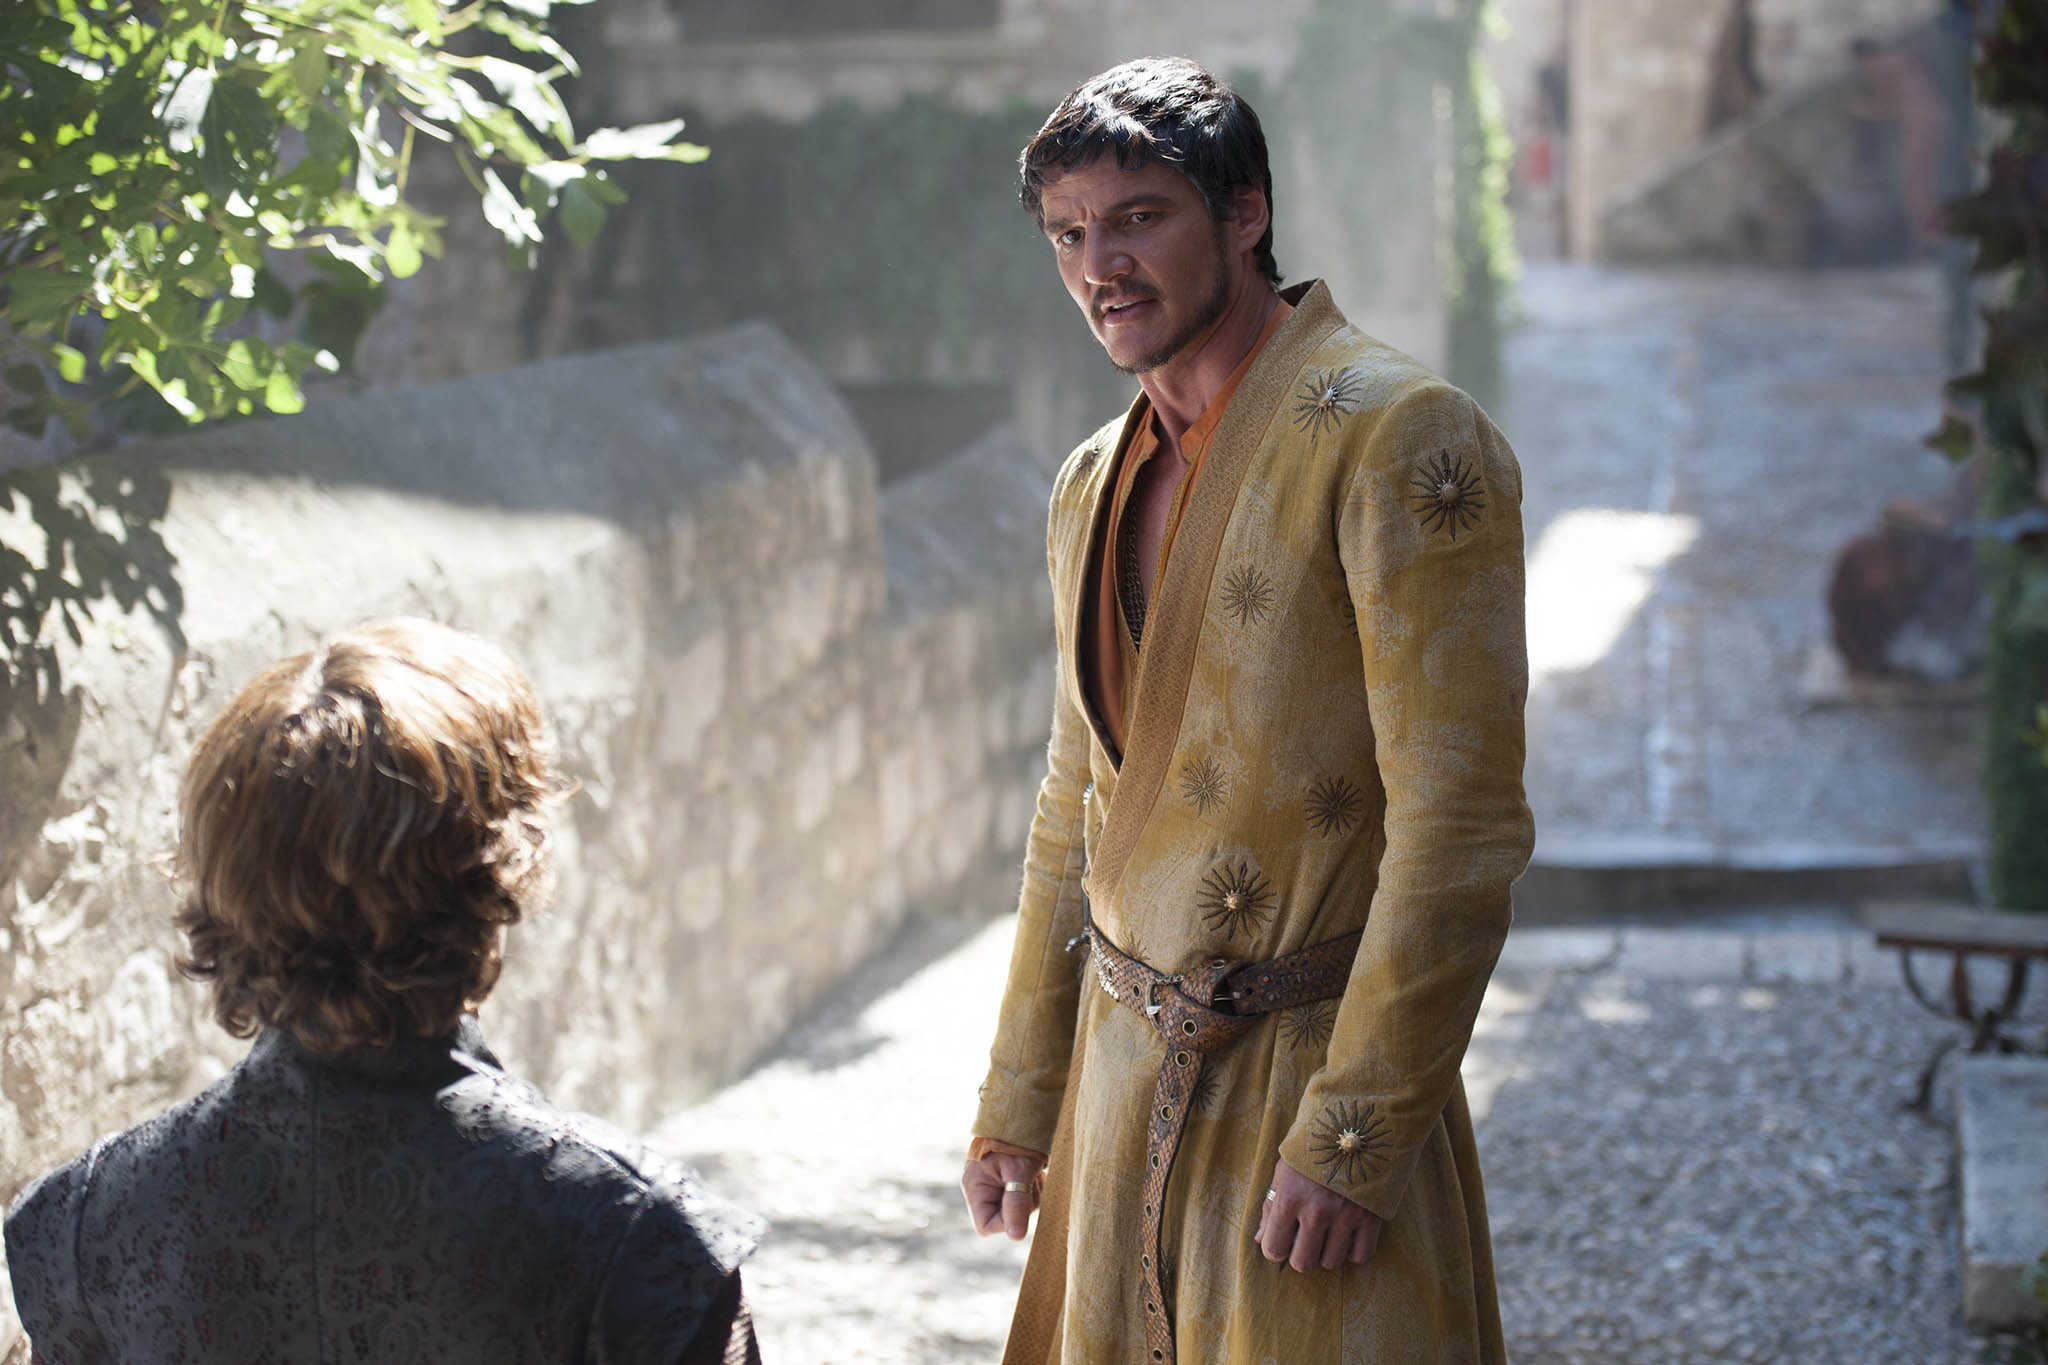 Oberyn Martell (Pedro Pascal, Game of Thrones)